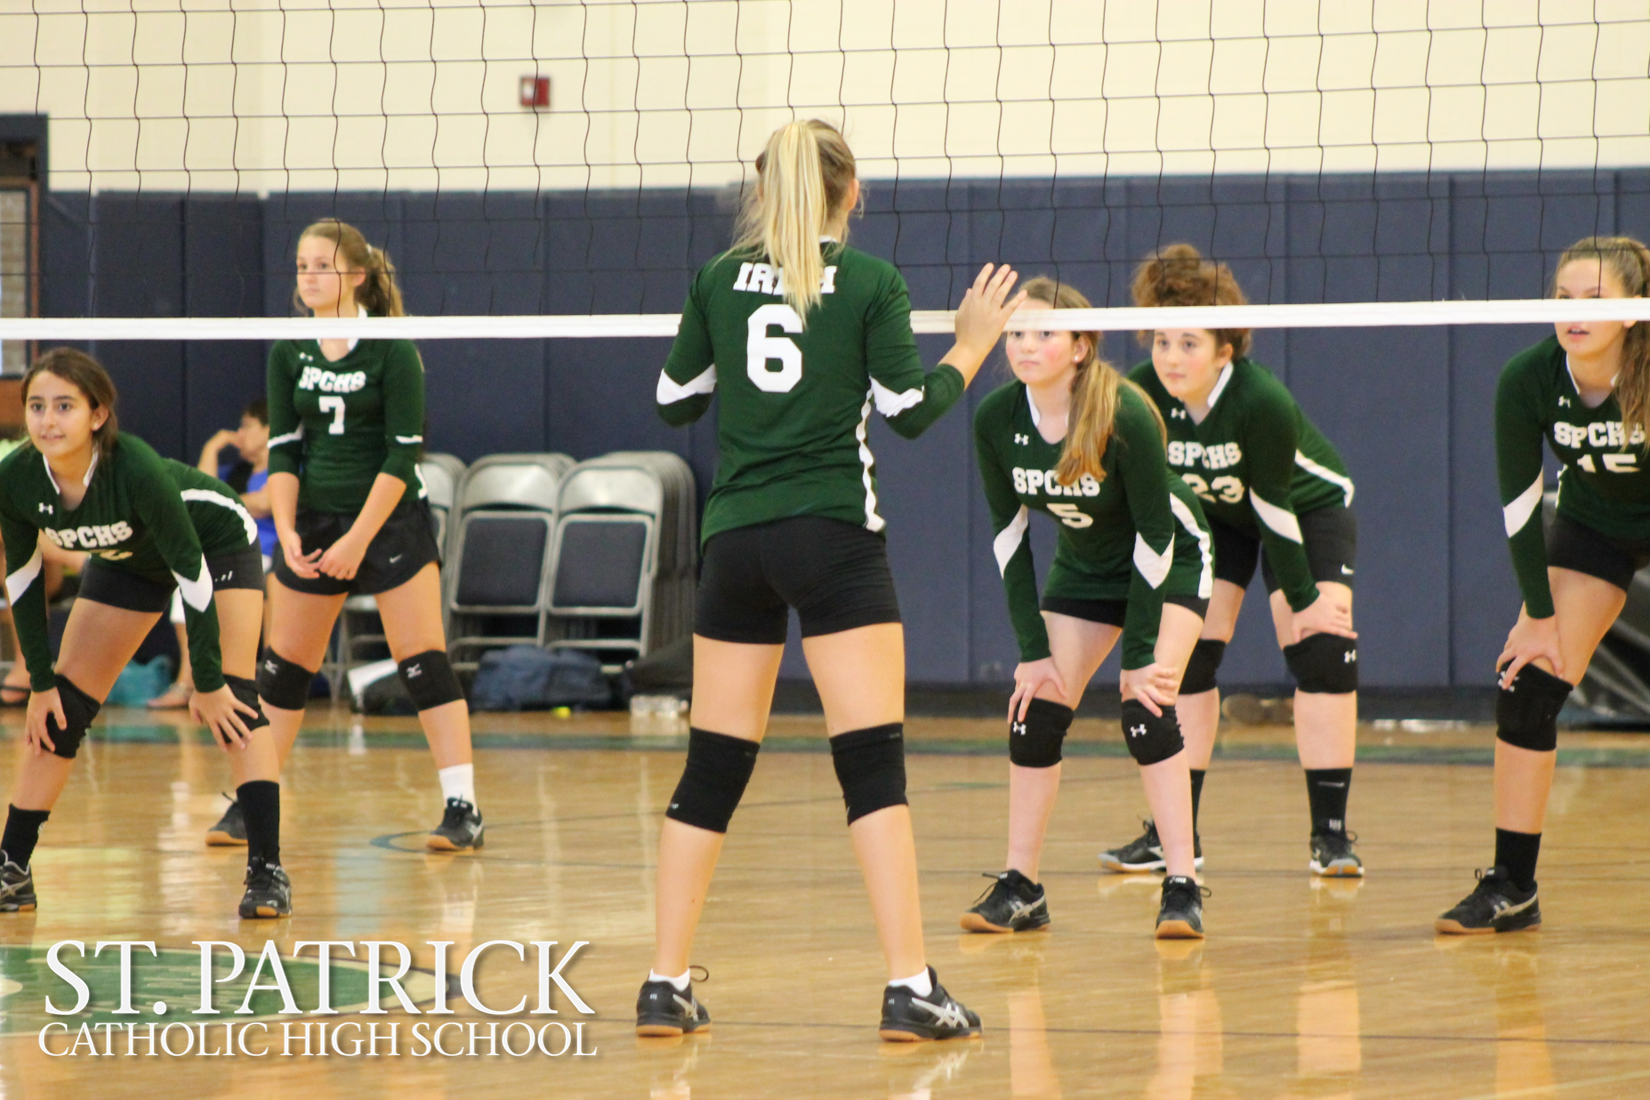 Junior High Volleyball Intramural